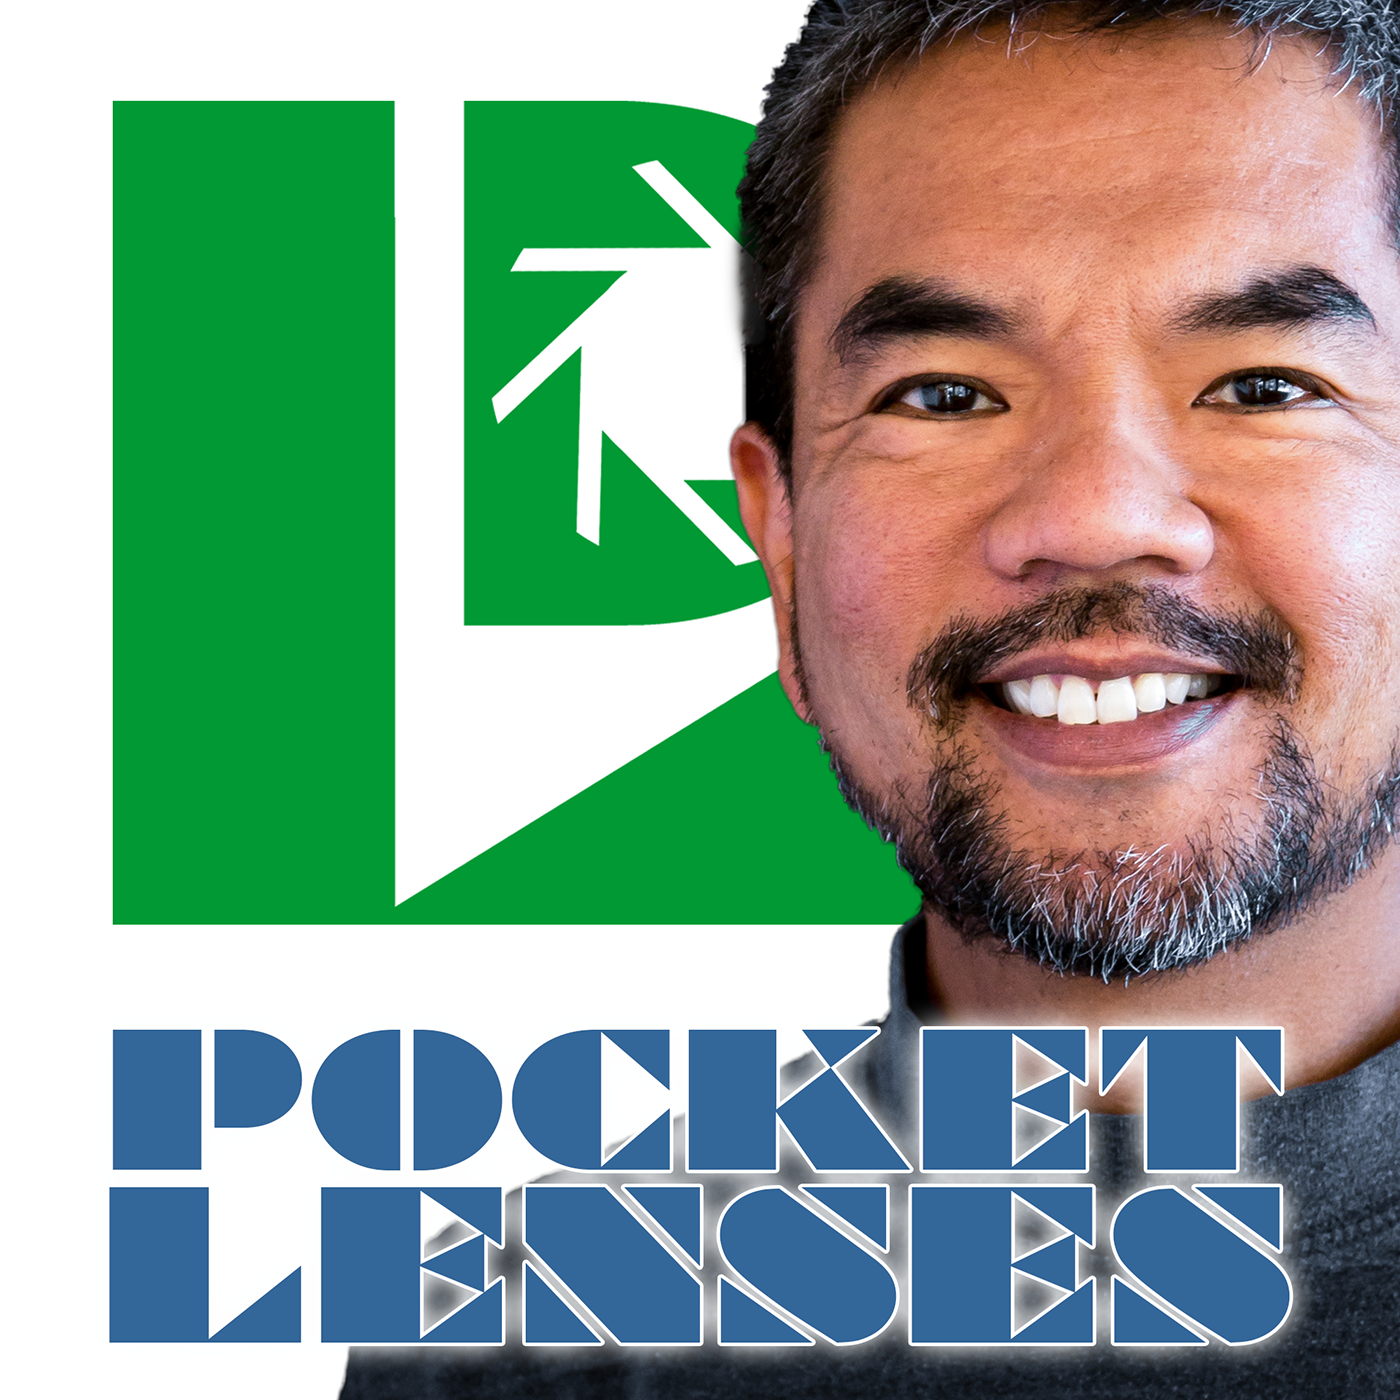 The Pocket Lenses Podcast: Mirrorless Cameras | Learn Photography | Photography Training | Photography Tips | Sonny Portacio